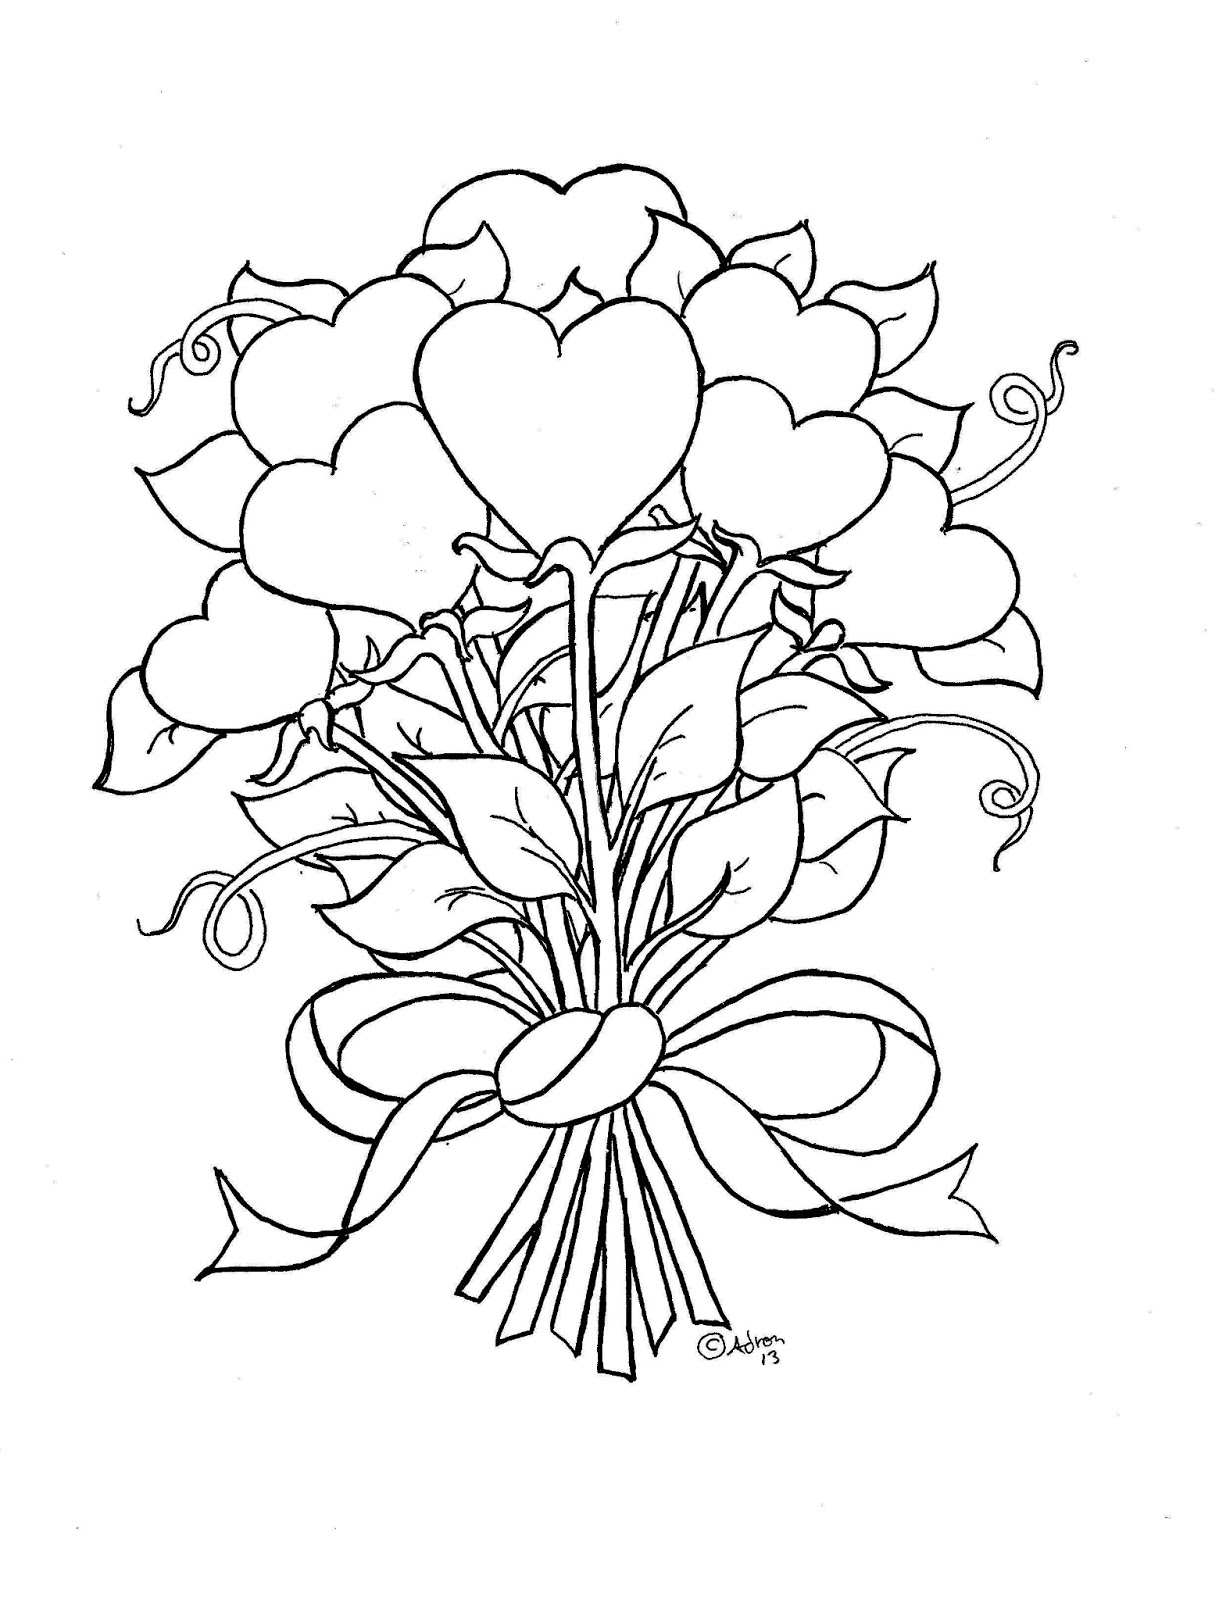 coloring pages of hearts and flowers - flower hearts kids print and color page